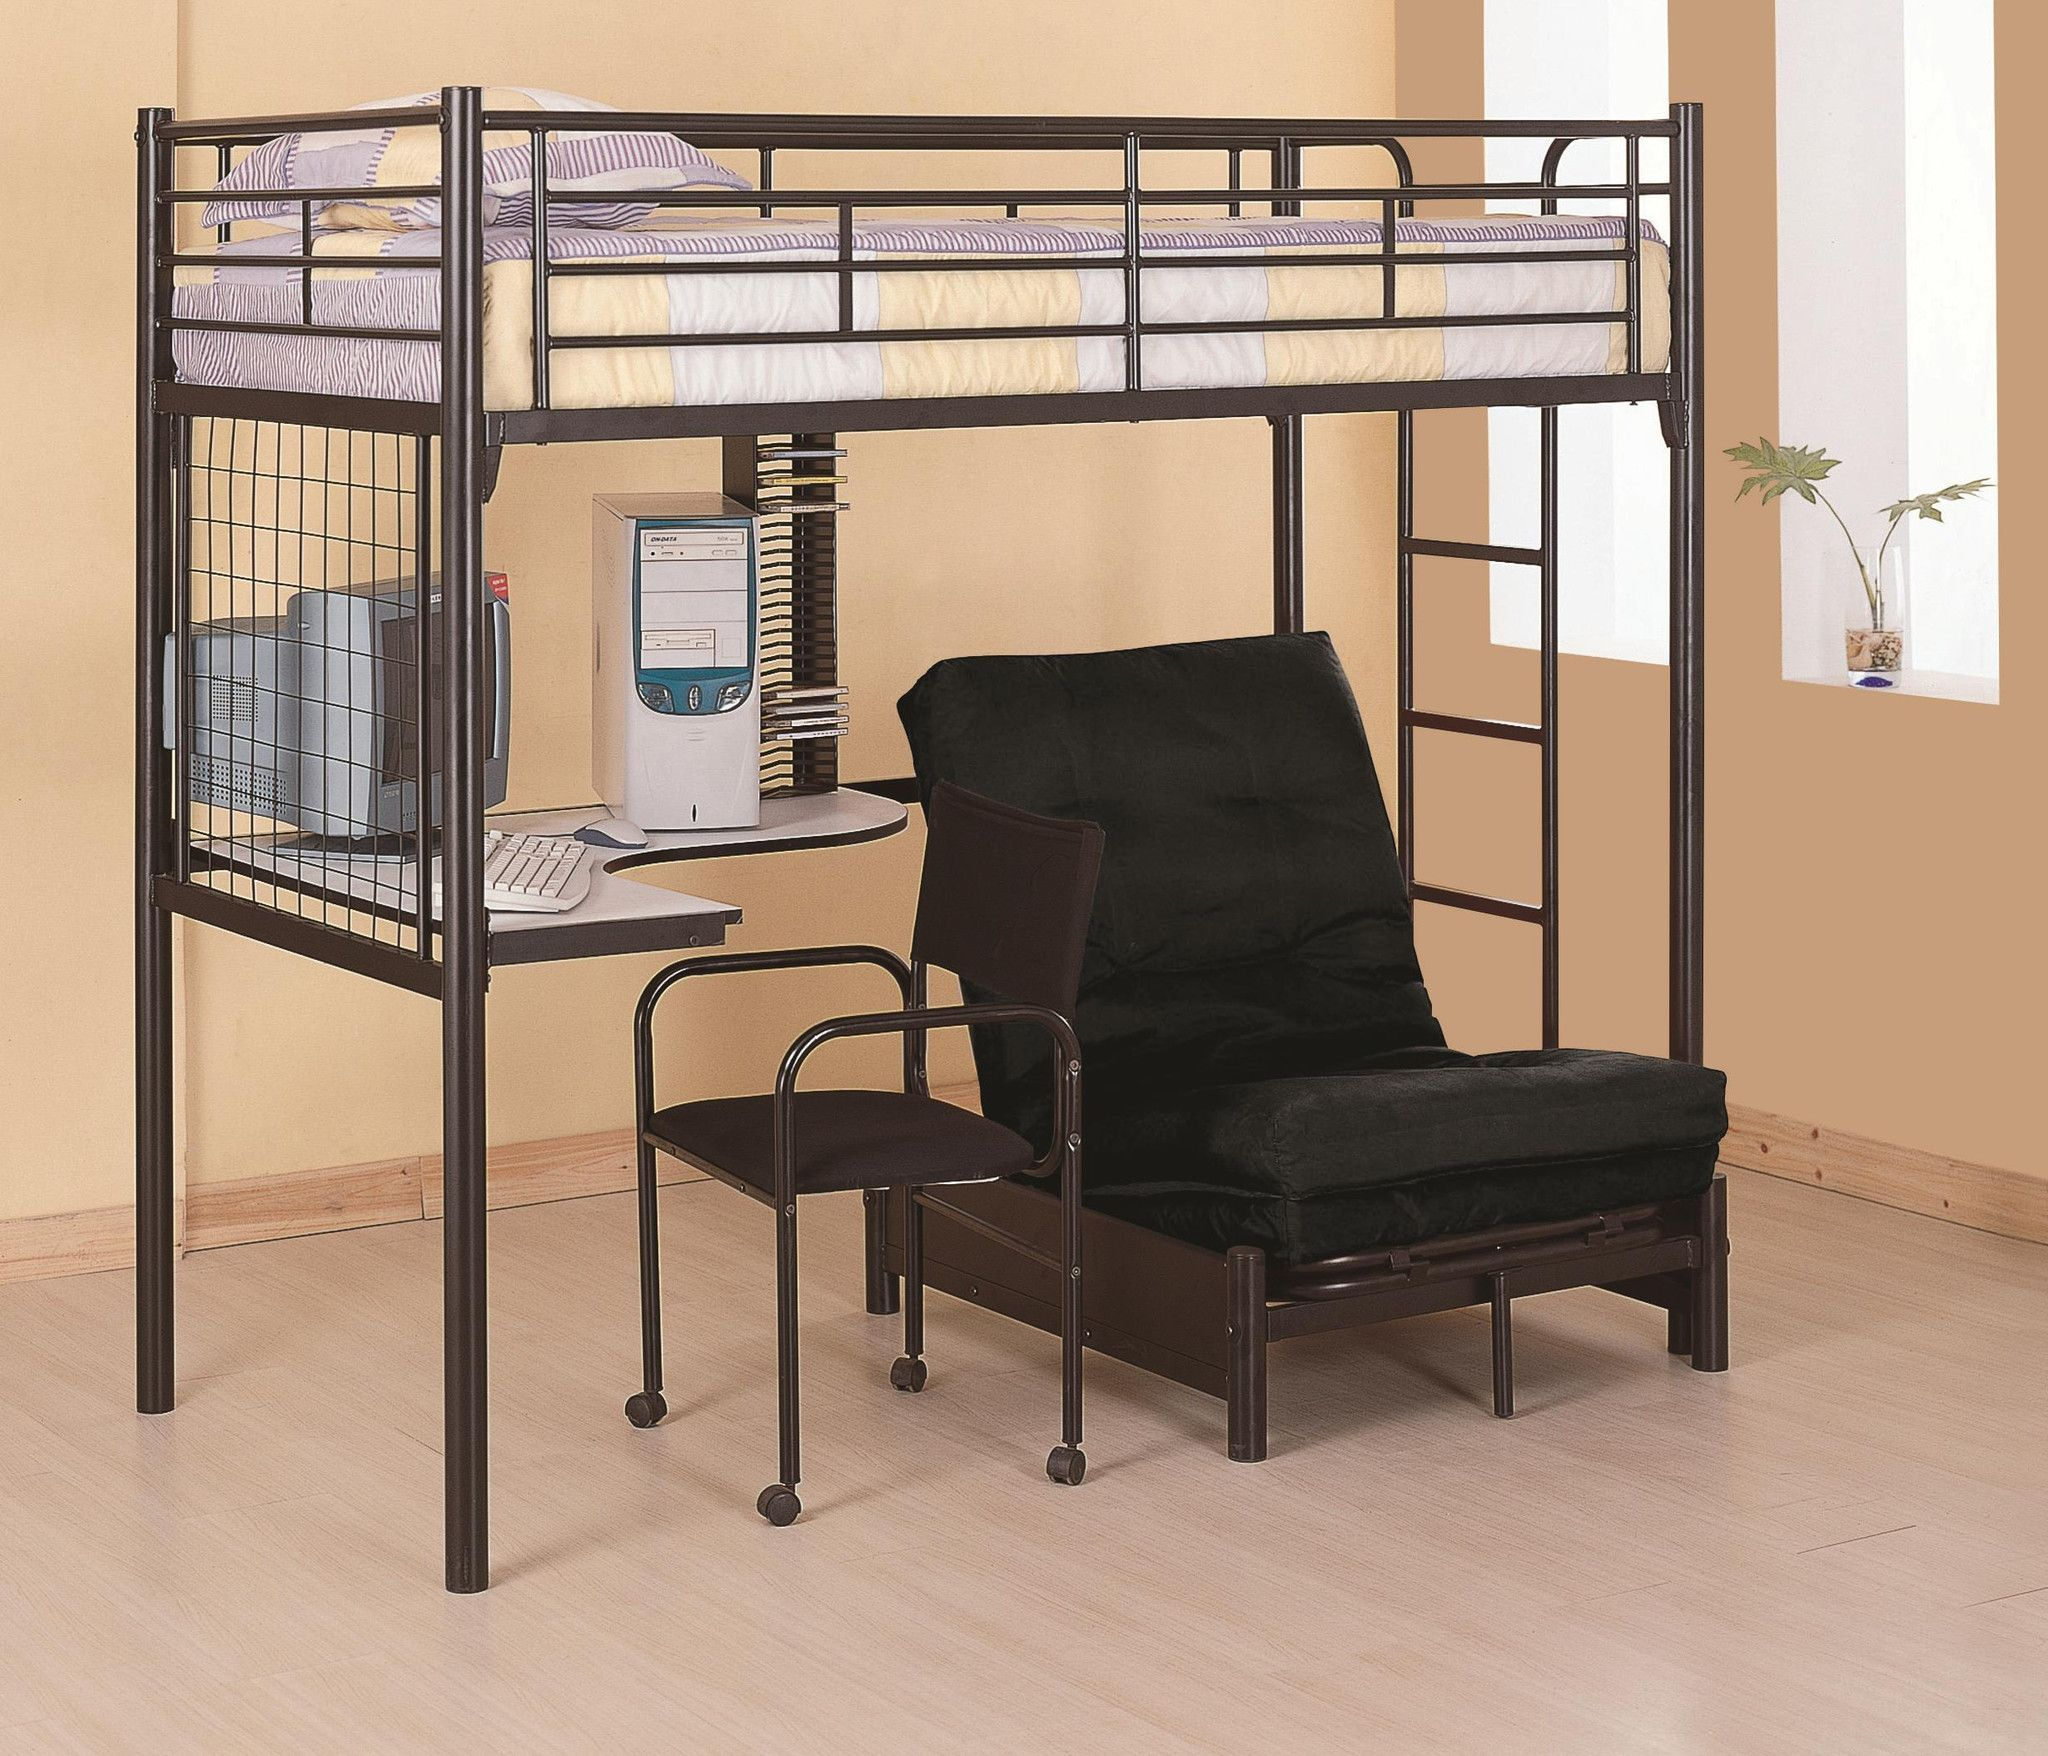 College Style WORKSTATION LOFT BED Study,Work and Sleep in